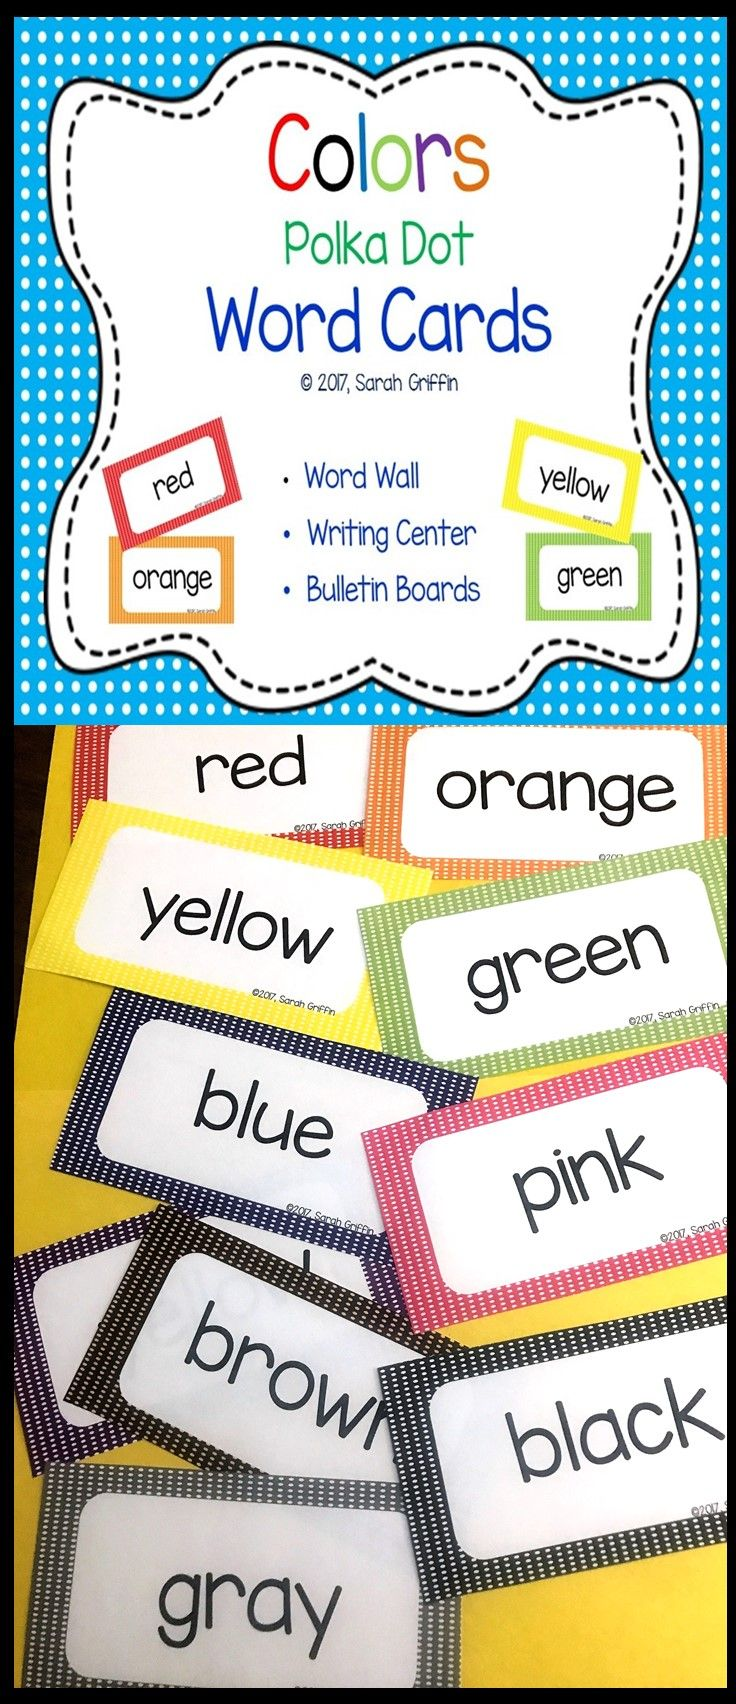 Color words word wall polka dot writing center for Bulletin board template word